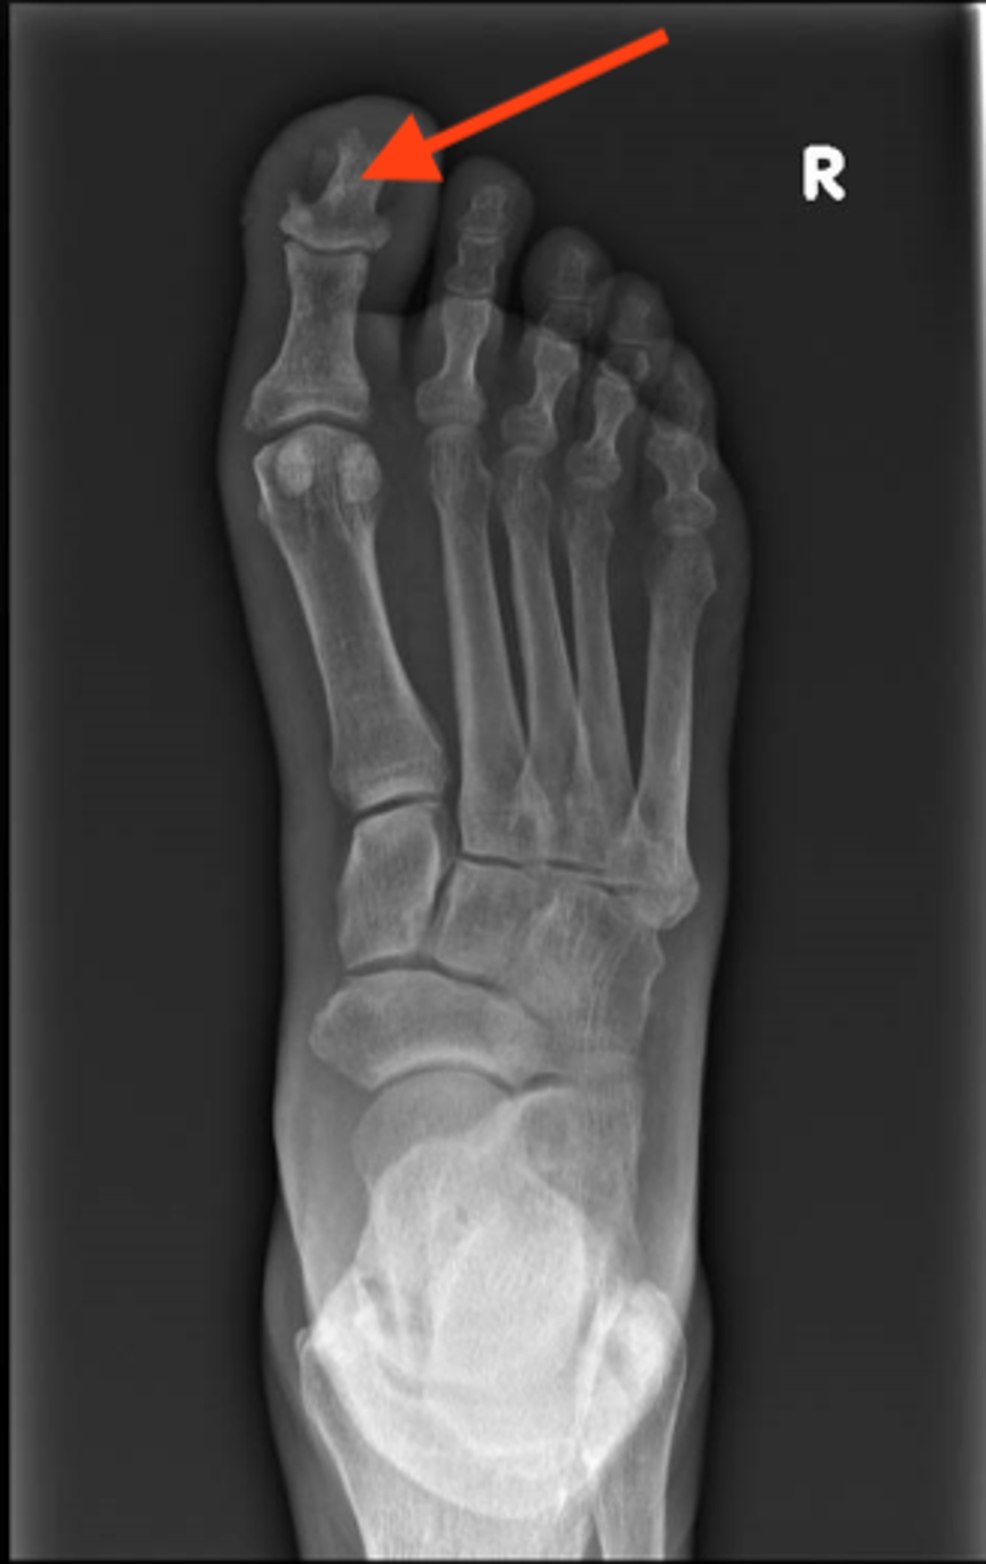 X-ray-showing-erosion-of-distal-phalanx-of-the-right-big-toe